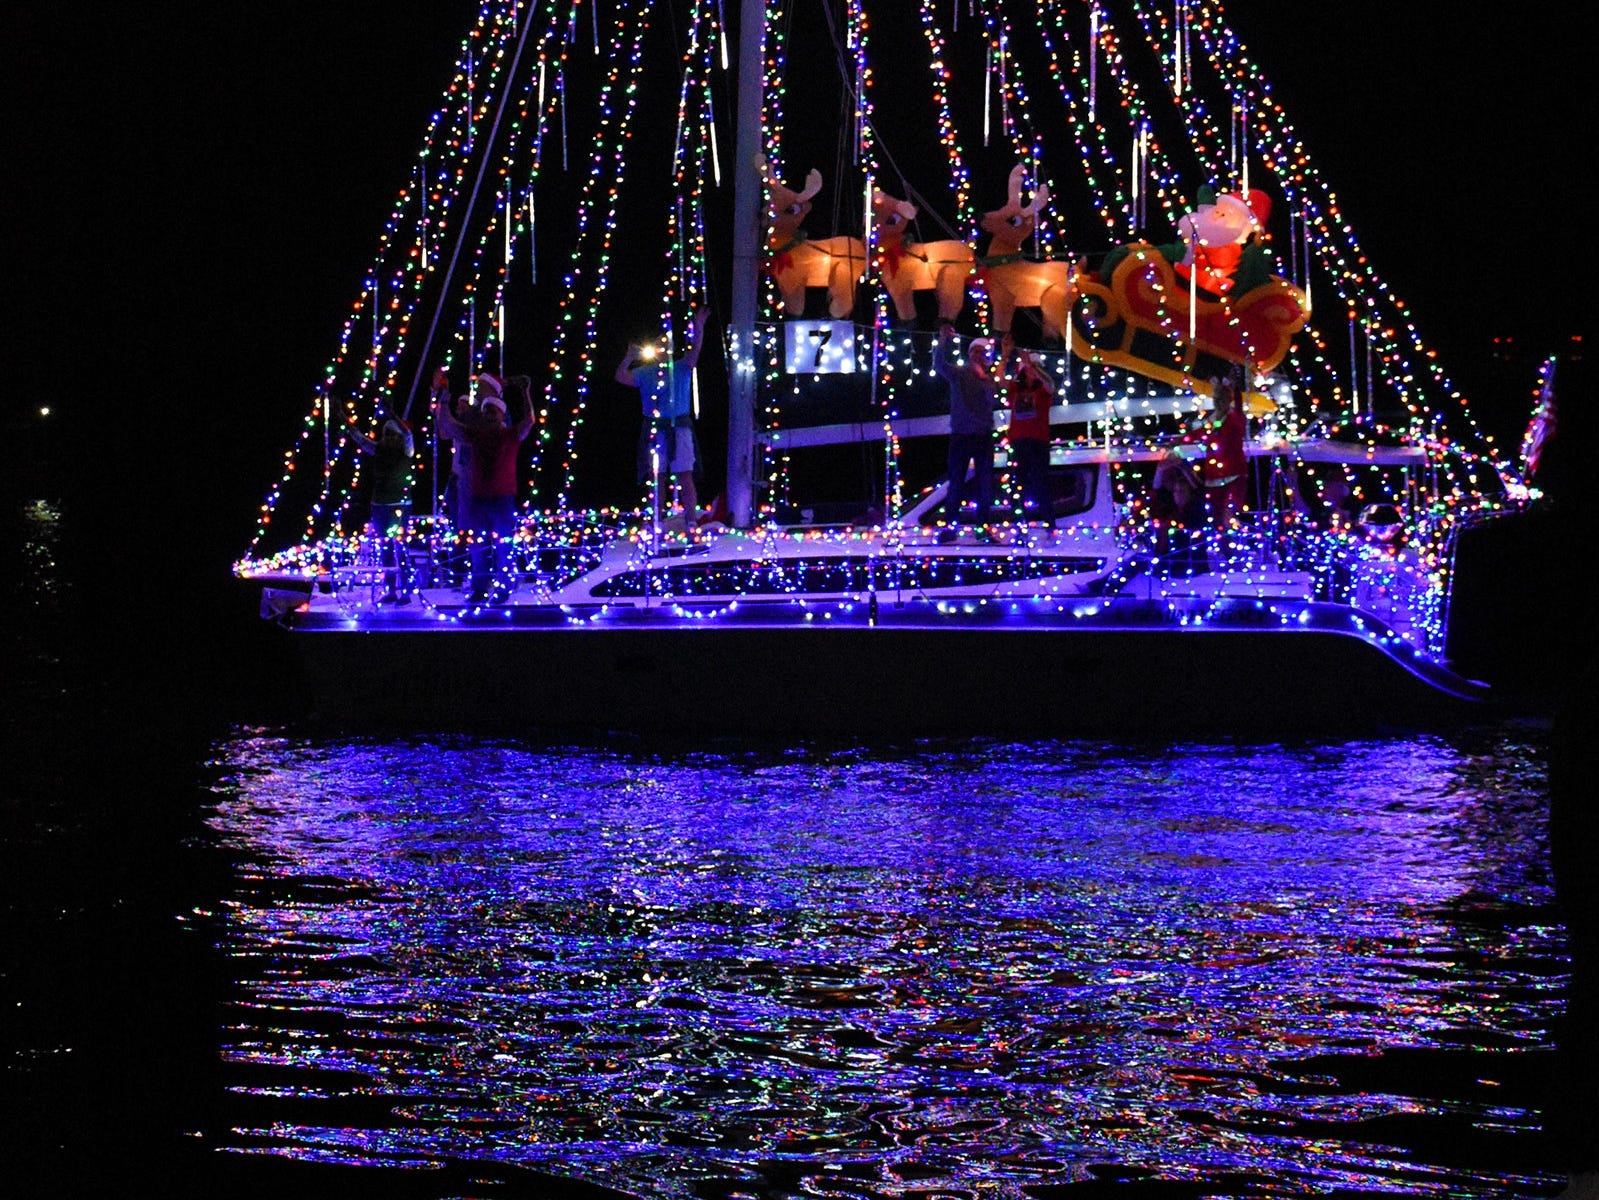 """Best in Parade winner, Capt. Mike Rushalk's """"Euphoria"""" cruises past the Snook Inn. The Christmas Island Style boat parade lit up Marco waterways Saturday evening."""